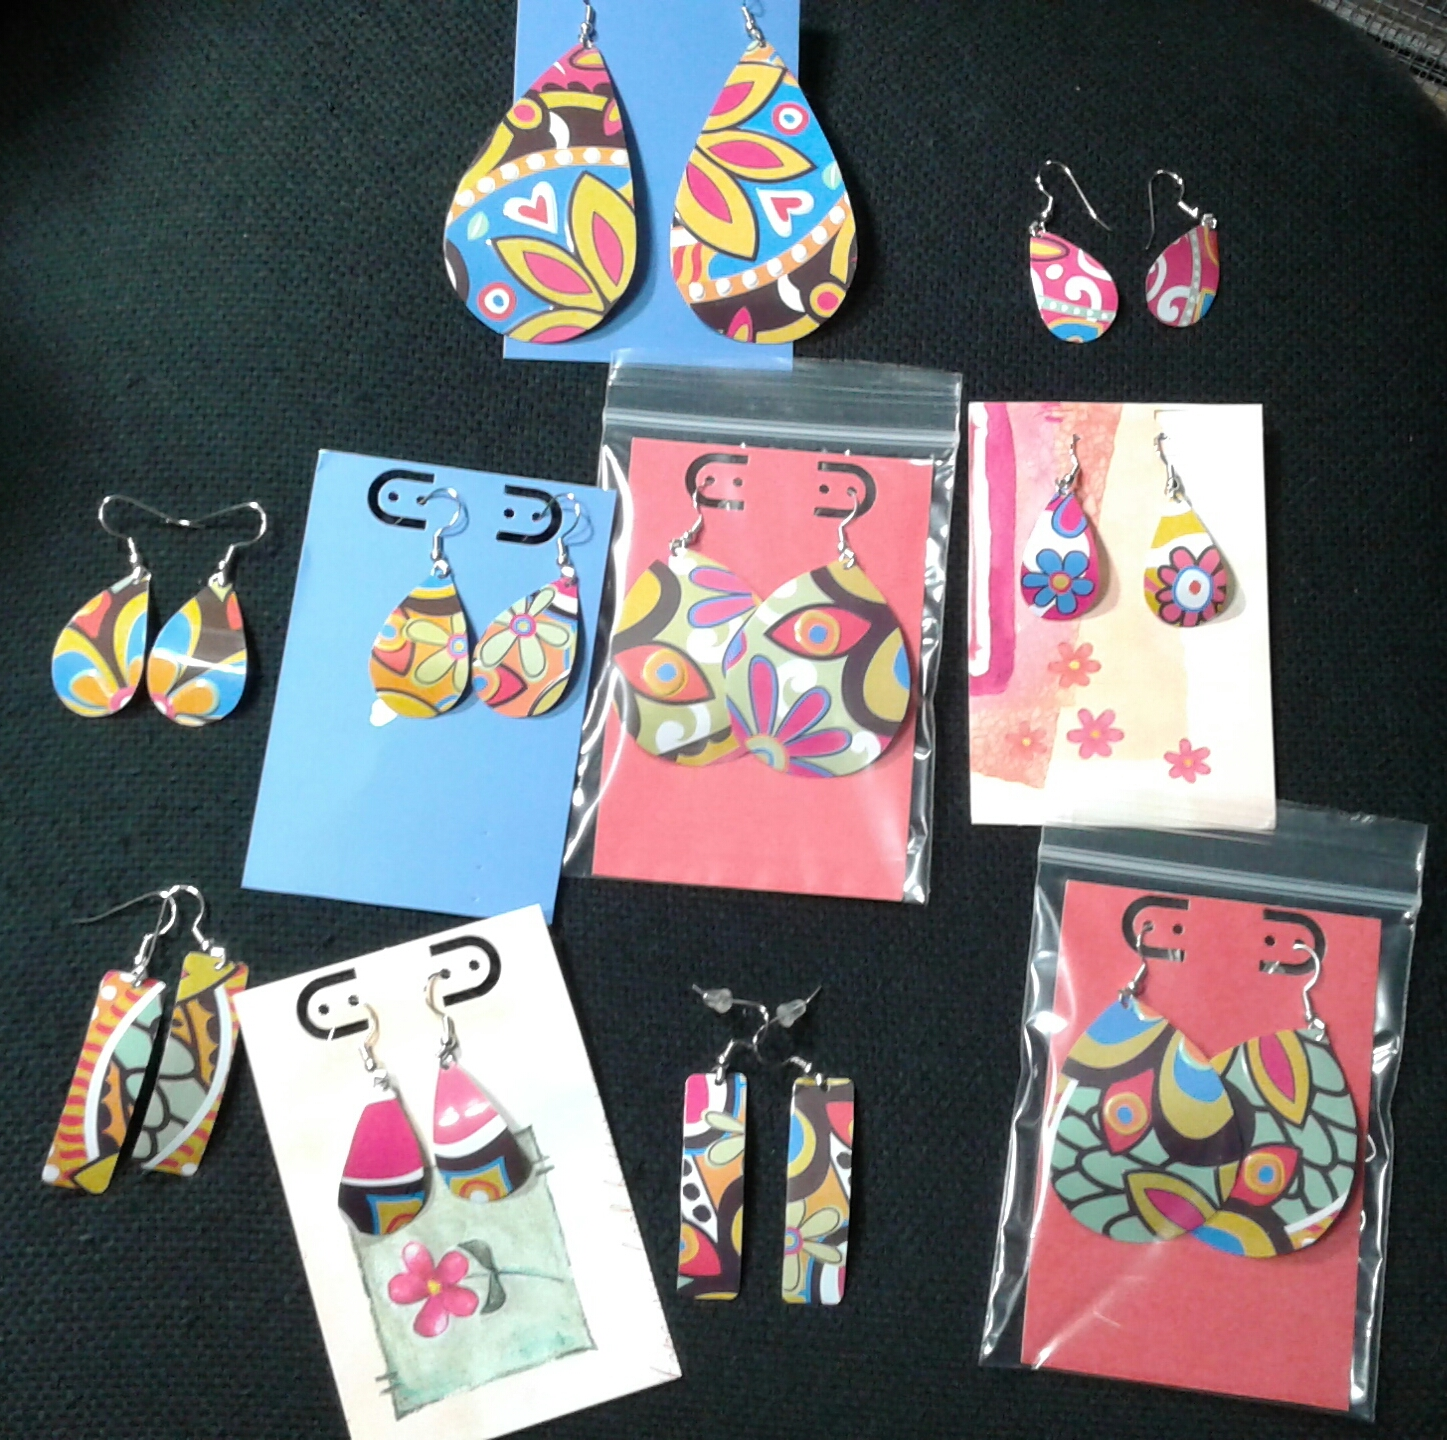 Mary's Originals - Hand-cut metal jewelry, made from recycled old tins &trays.